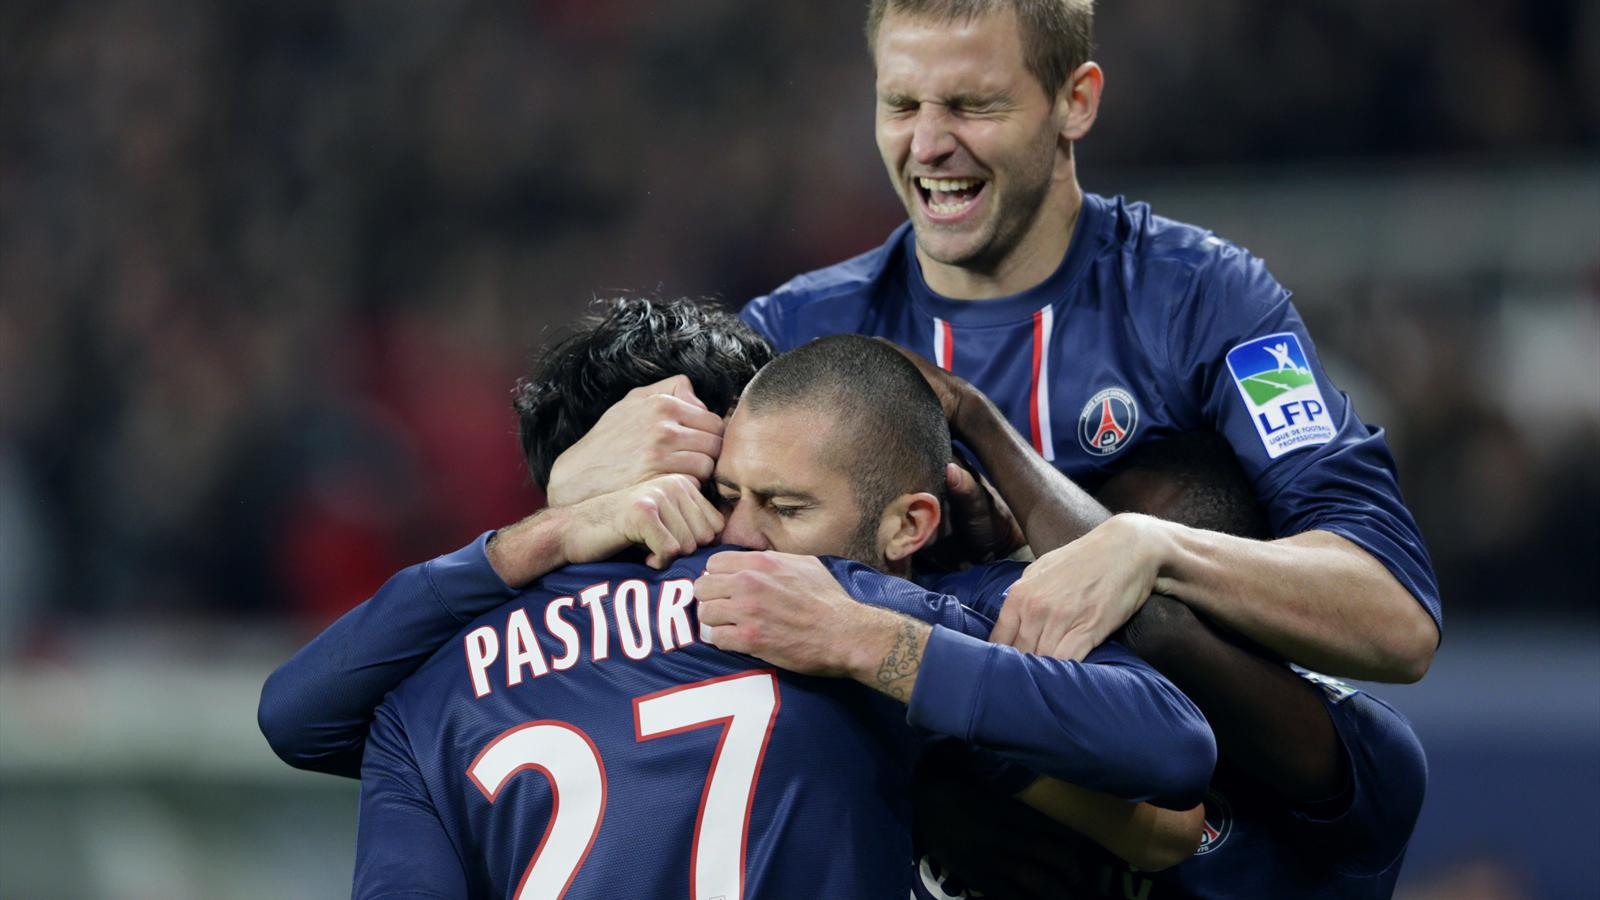 Le psg d boulonne l 39 om coupe de la ligue 2012 2013 football eurosport - Coupe de la ligue 2013 14 ...